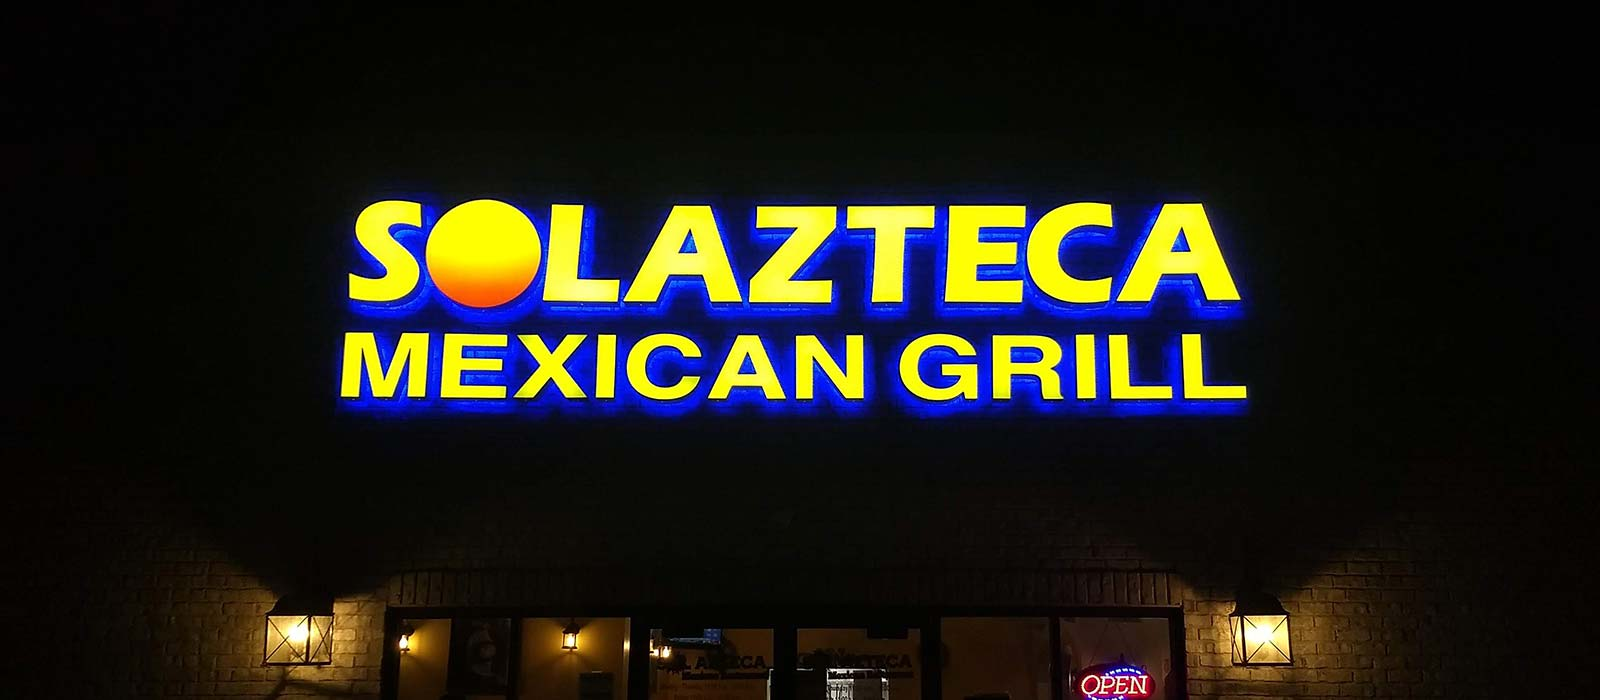 Solazteca Channel Letters And Reverse Lit Signage